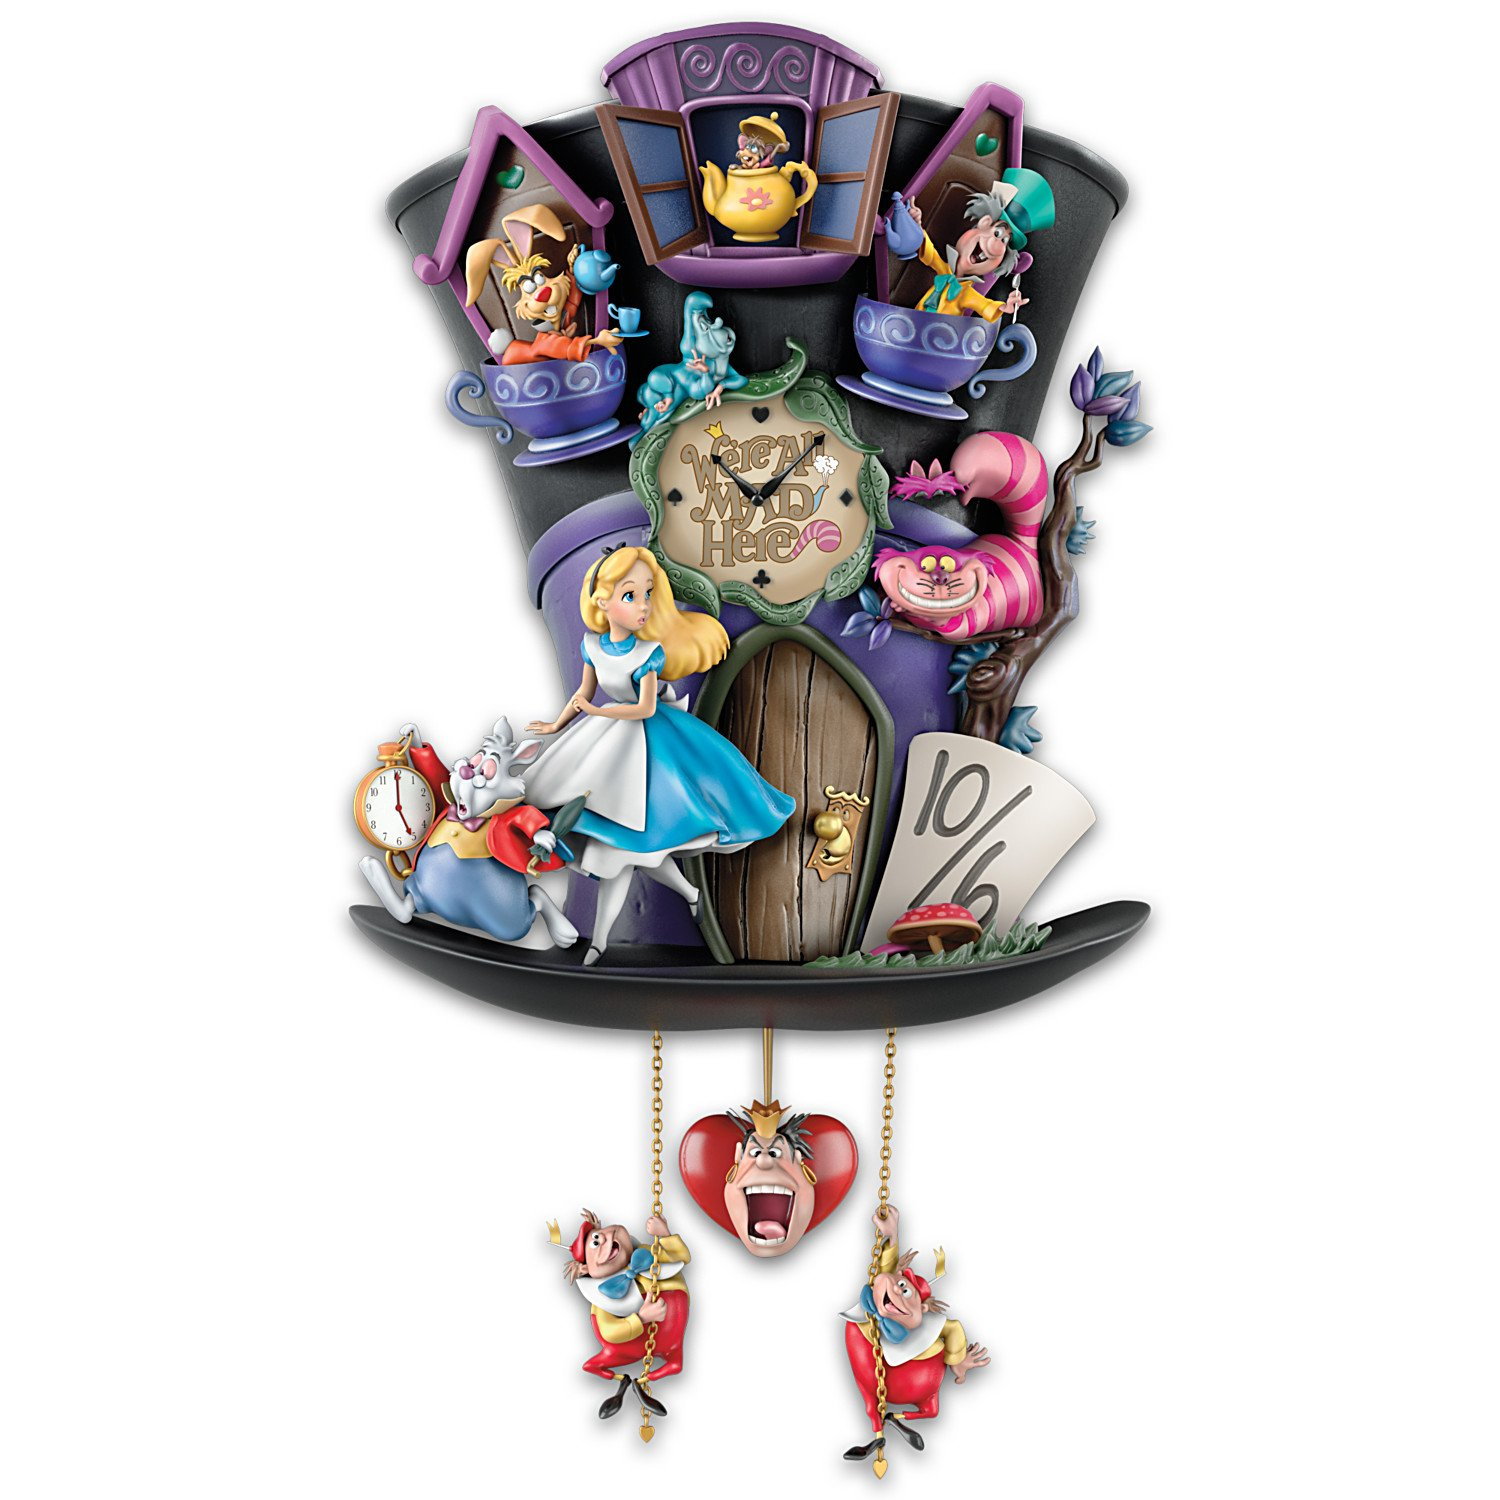 Disney Alice in Wonderland Mad Hatter Light Up Cuckoo Clock by The Bradford Exchange by Bradford Exchange